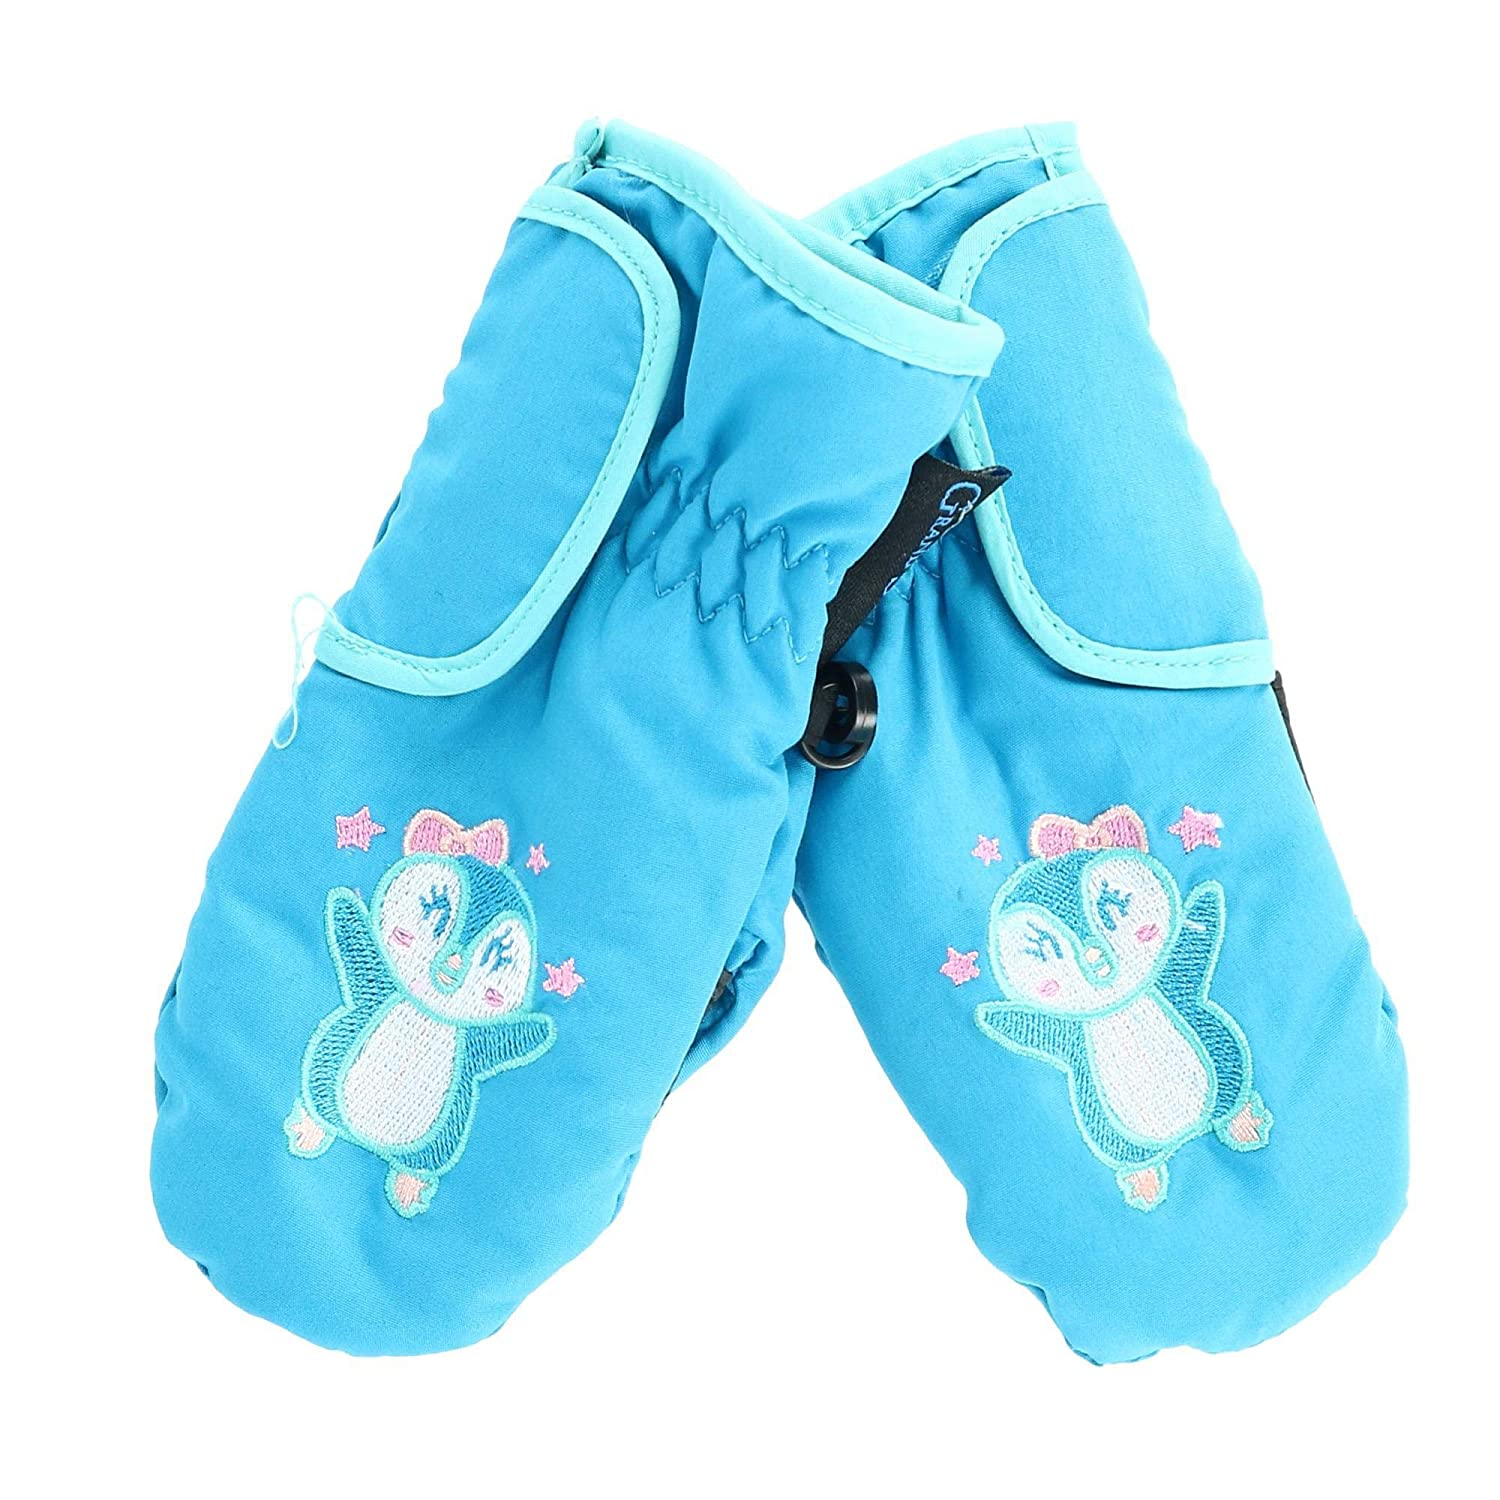 1-2 Years Gogokids Baby Ski Gloves Winter Thermal Snowboarding Mittens Waterproof Windproof Skiing Cycling Hiking